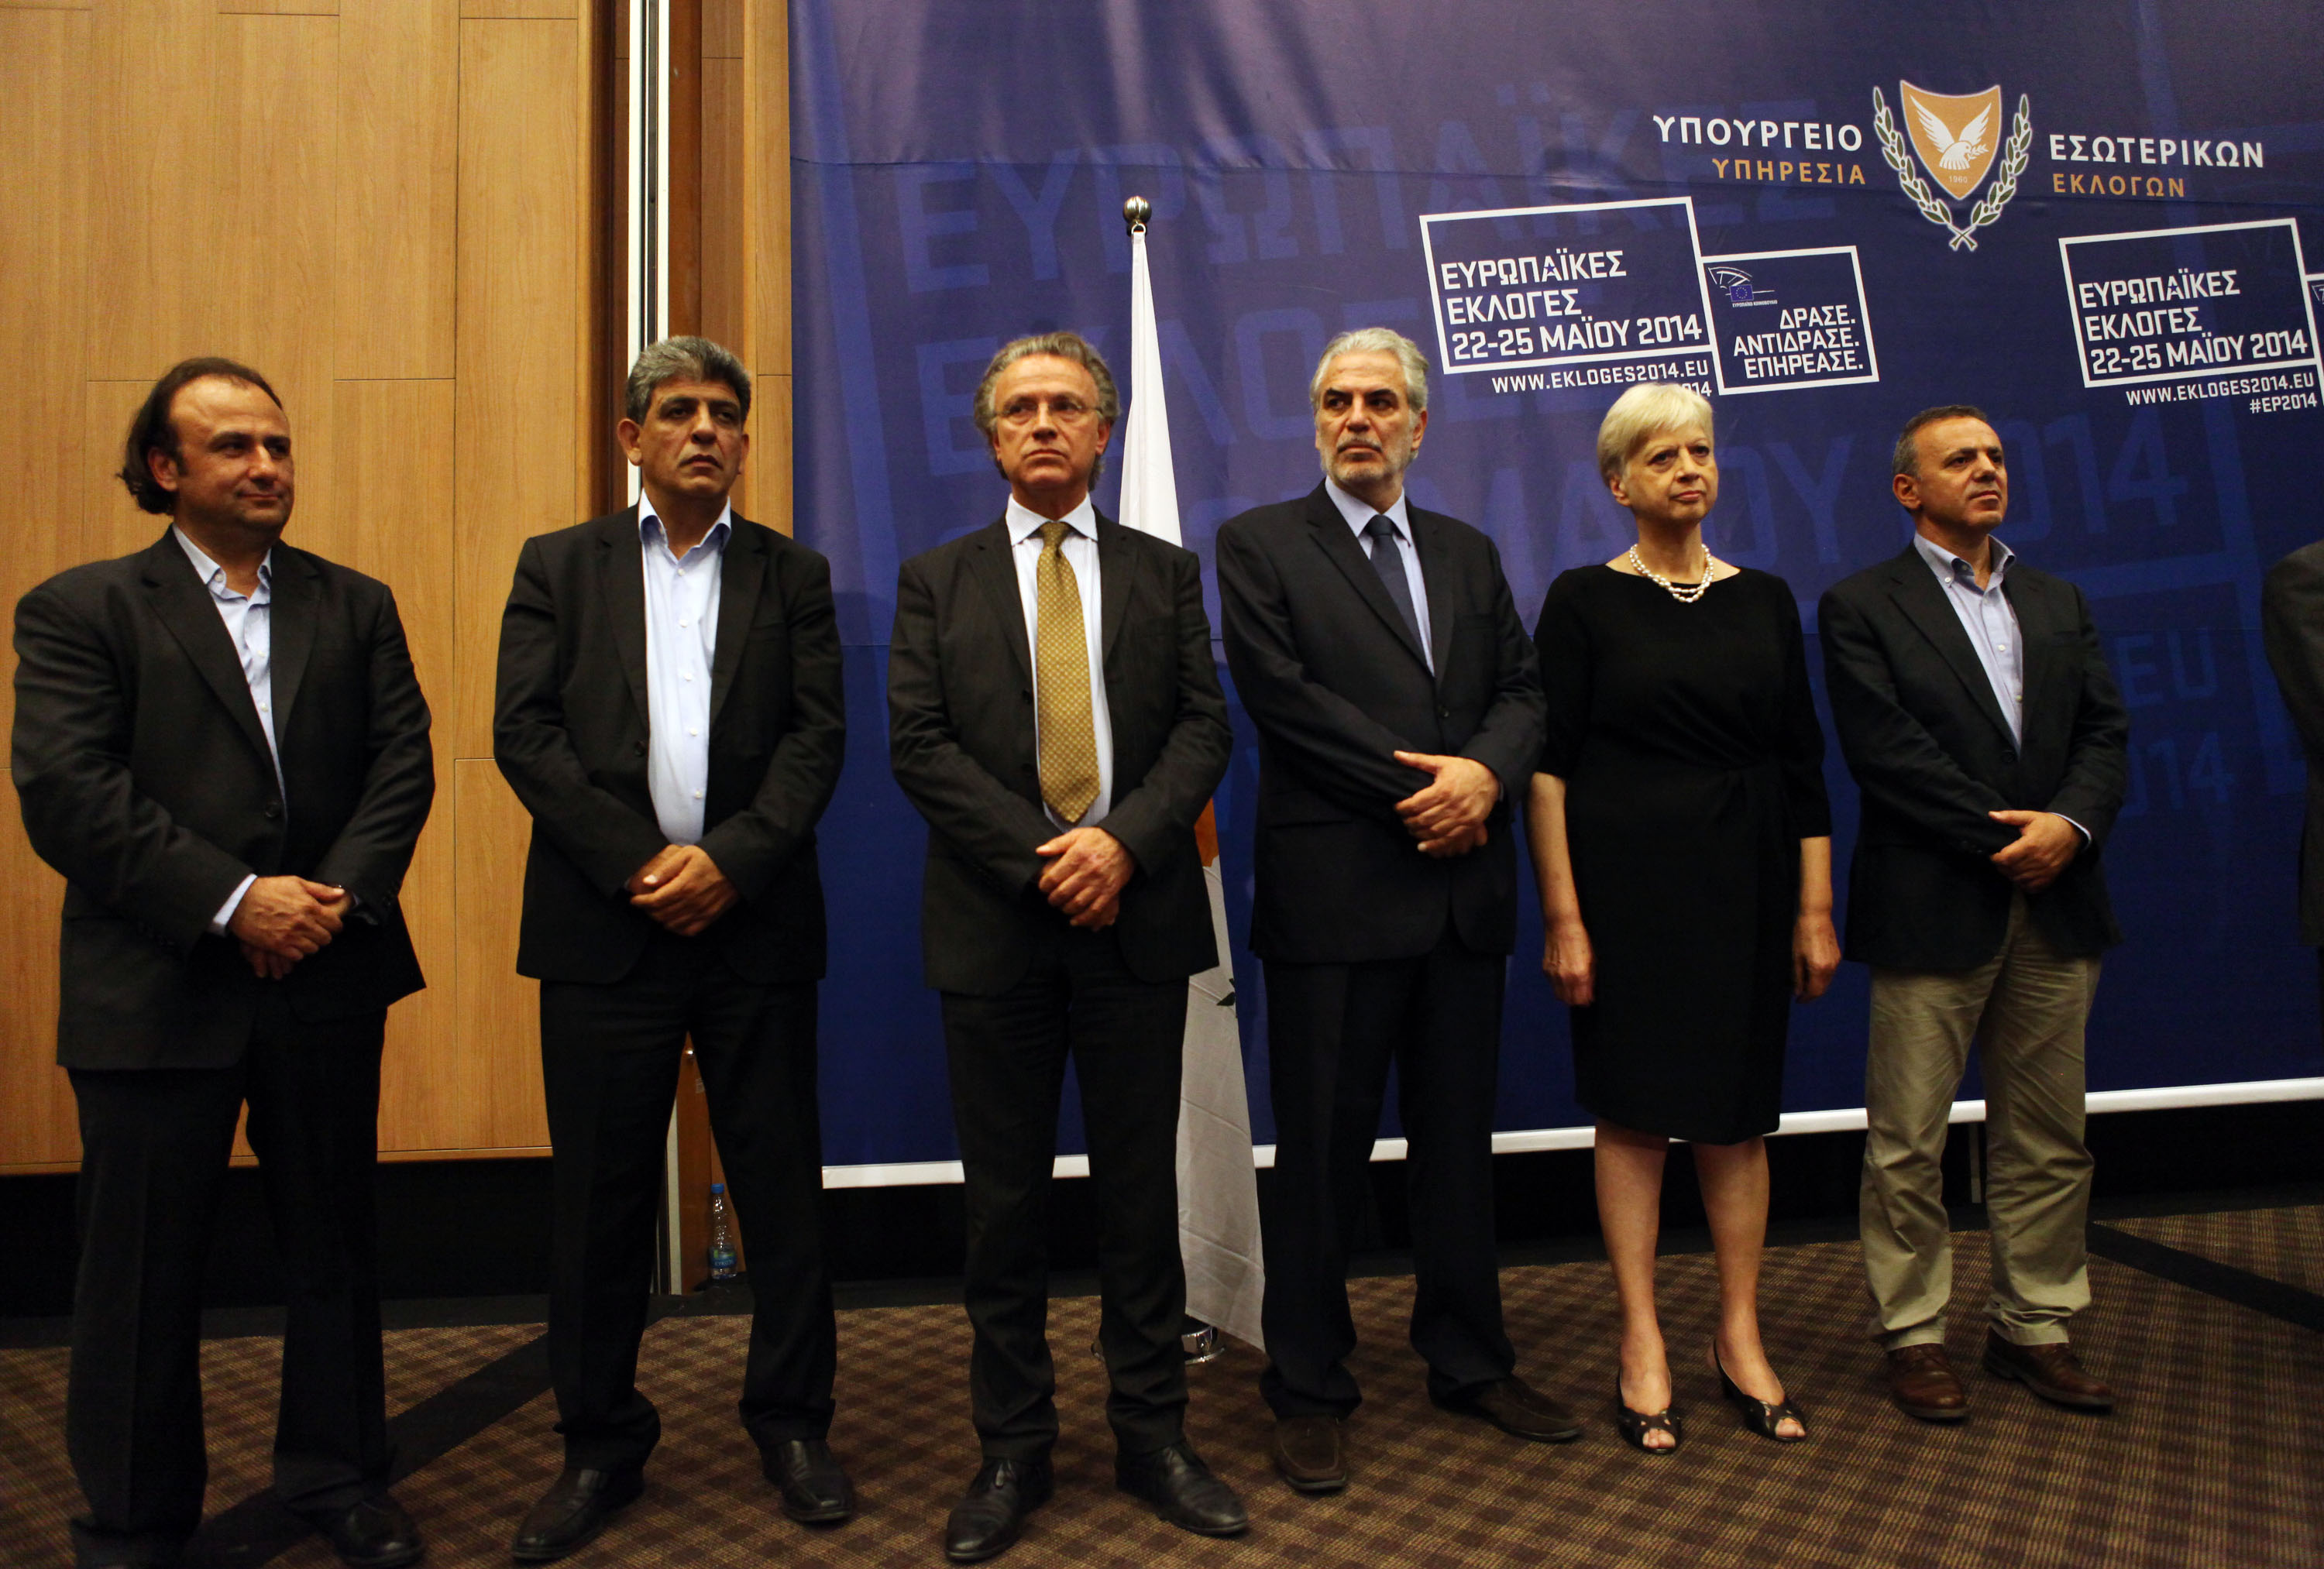 Cyprus elected six MPEs as abstention stood at 56,03%!